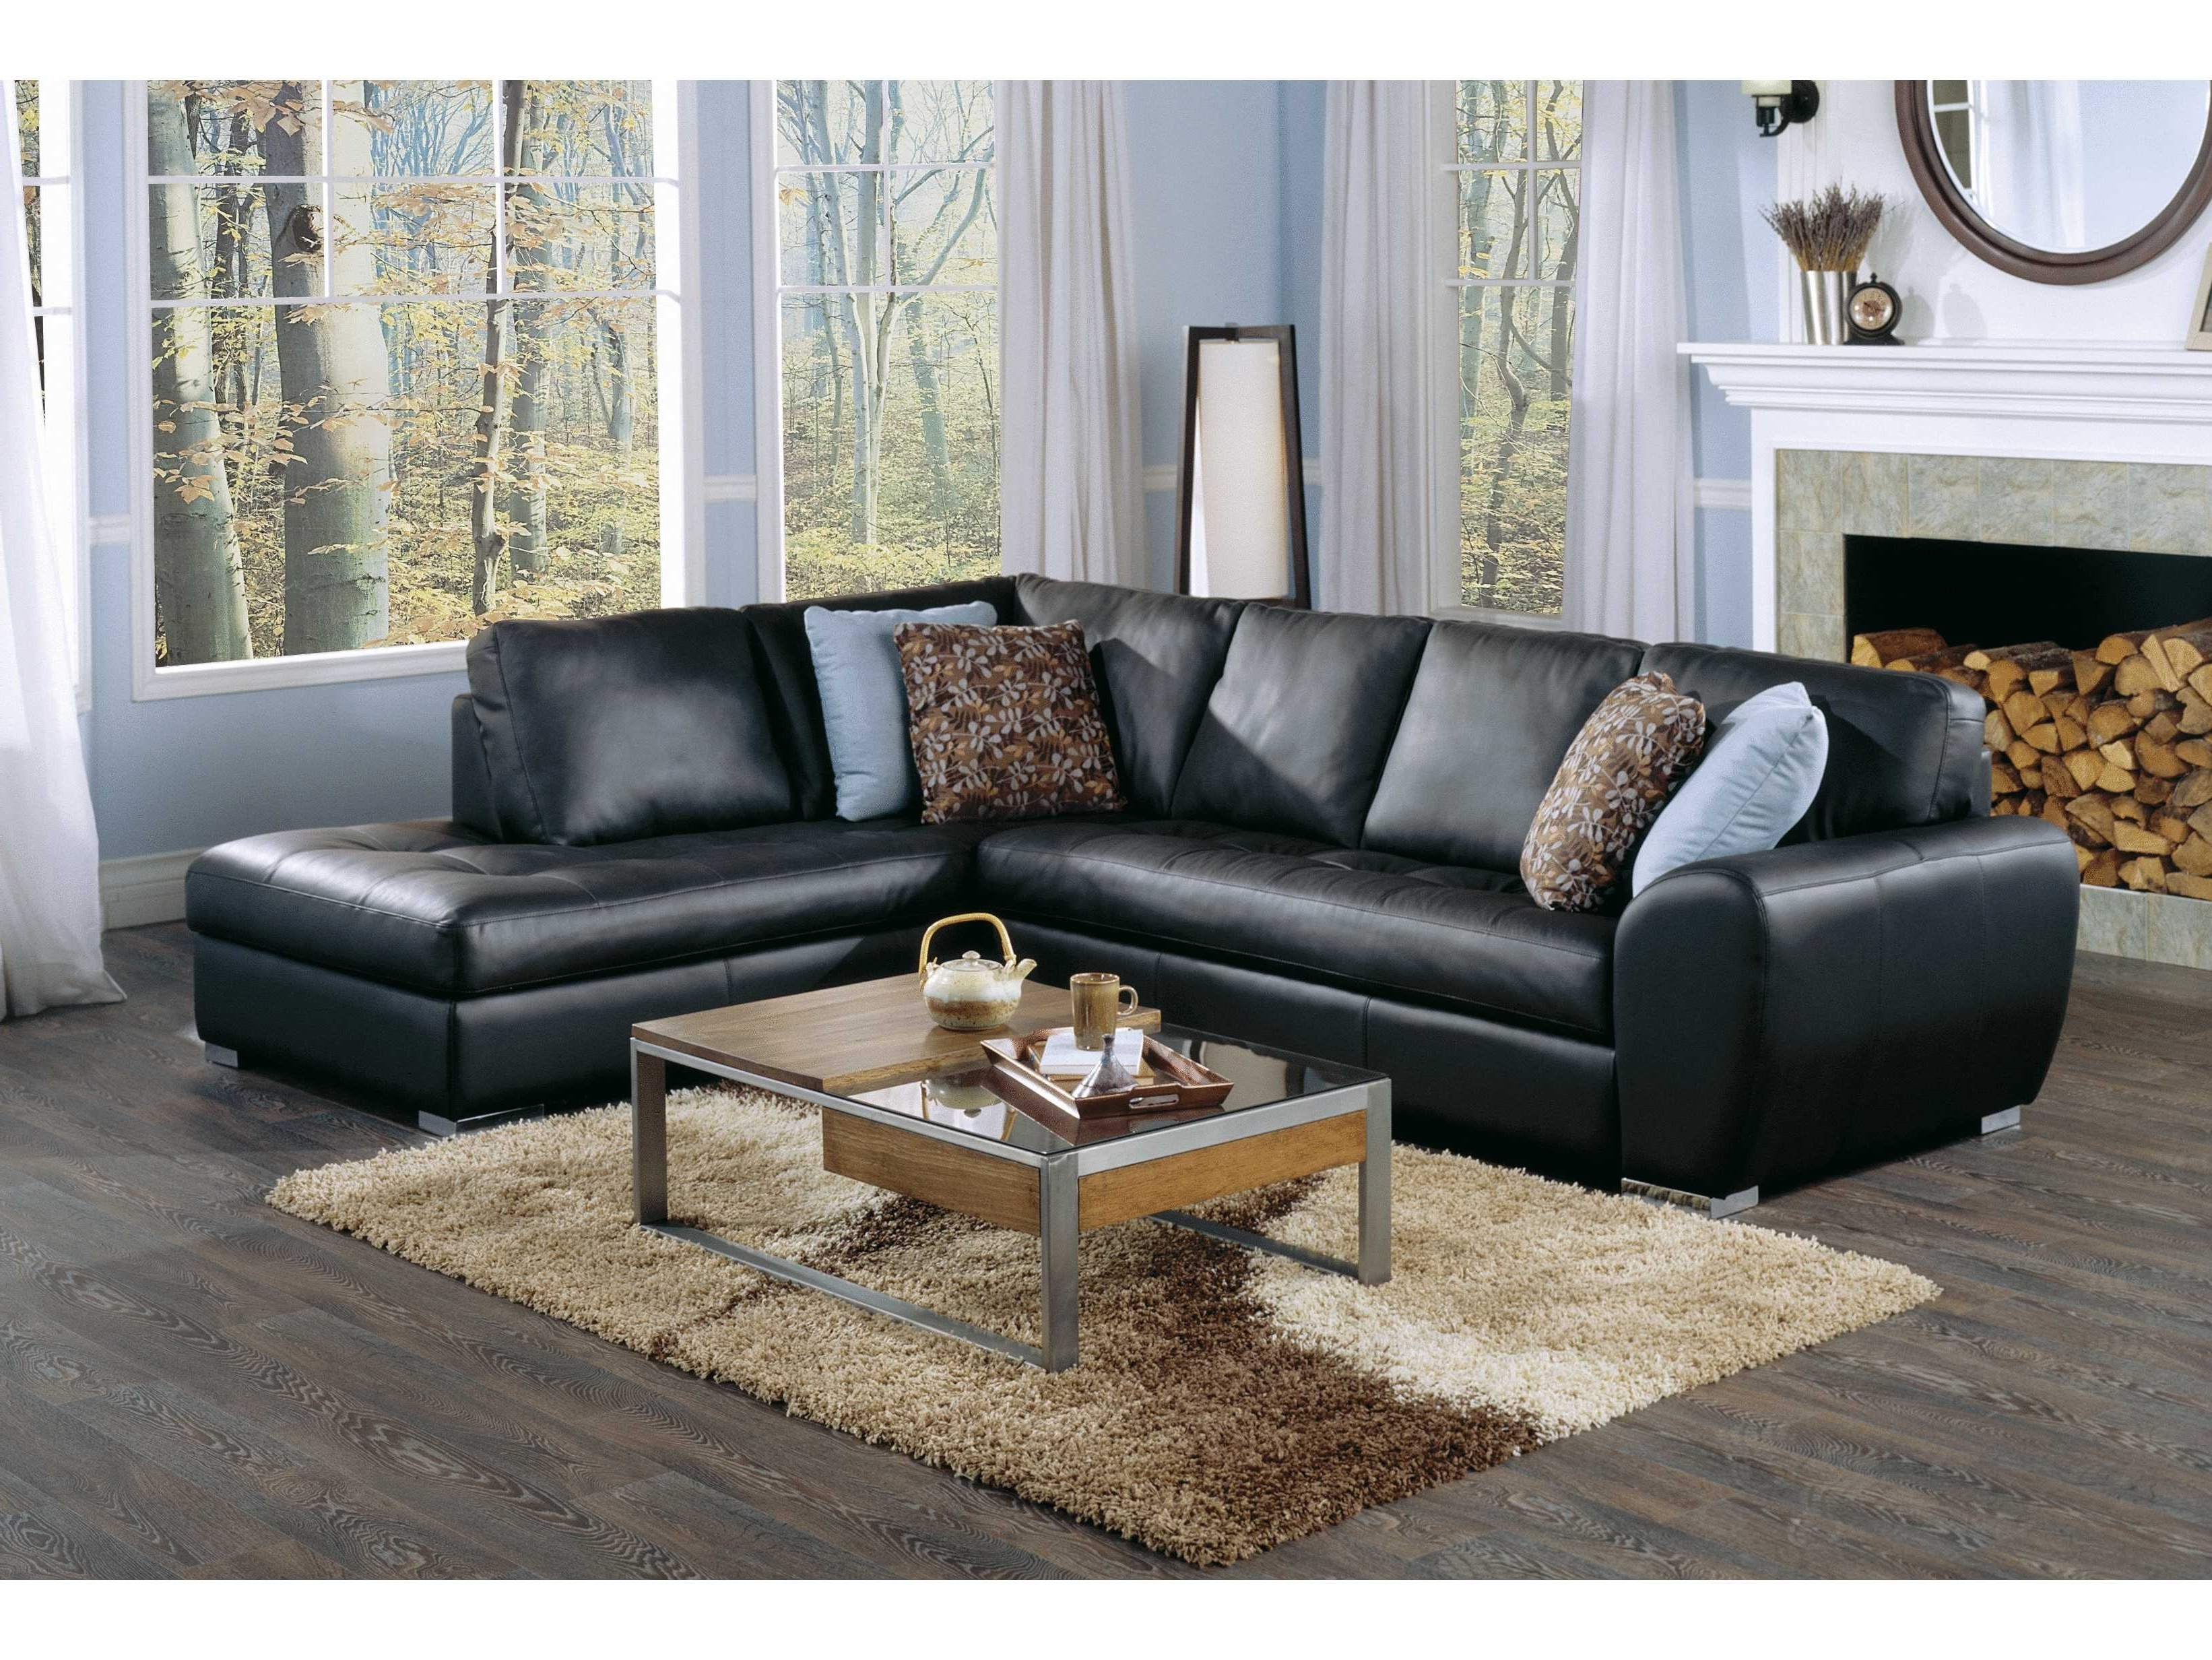 Featured Image of 110X90 Sectional Sofas